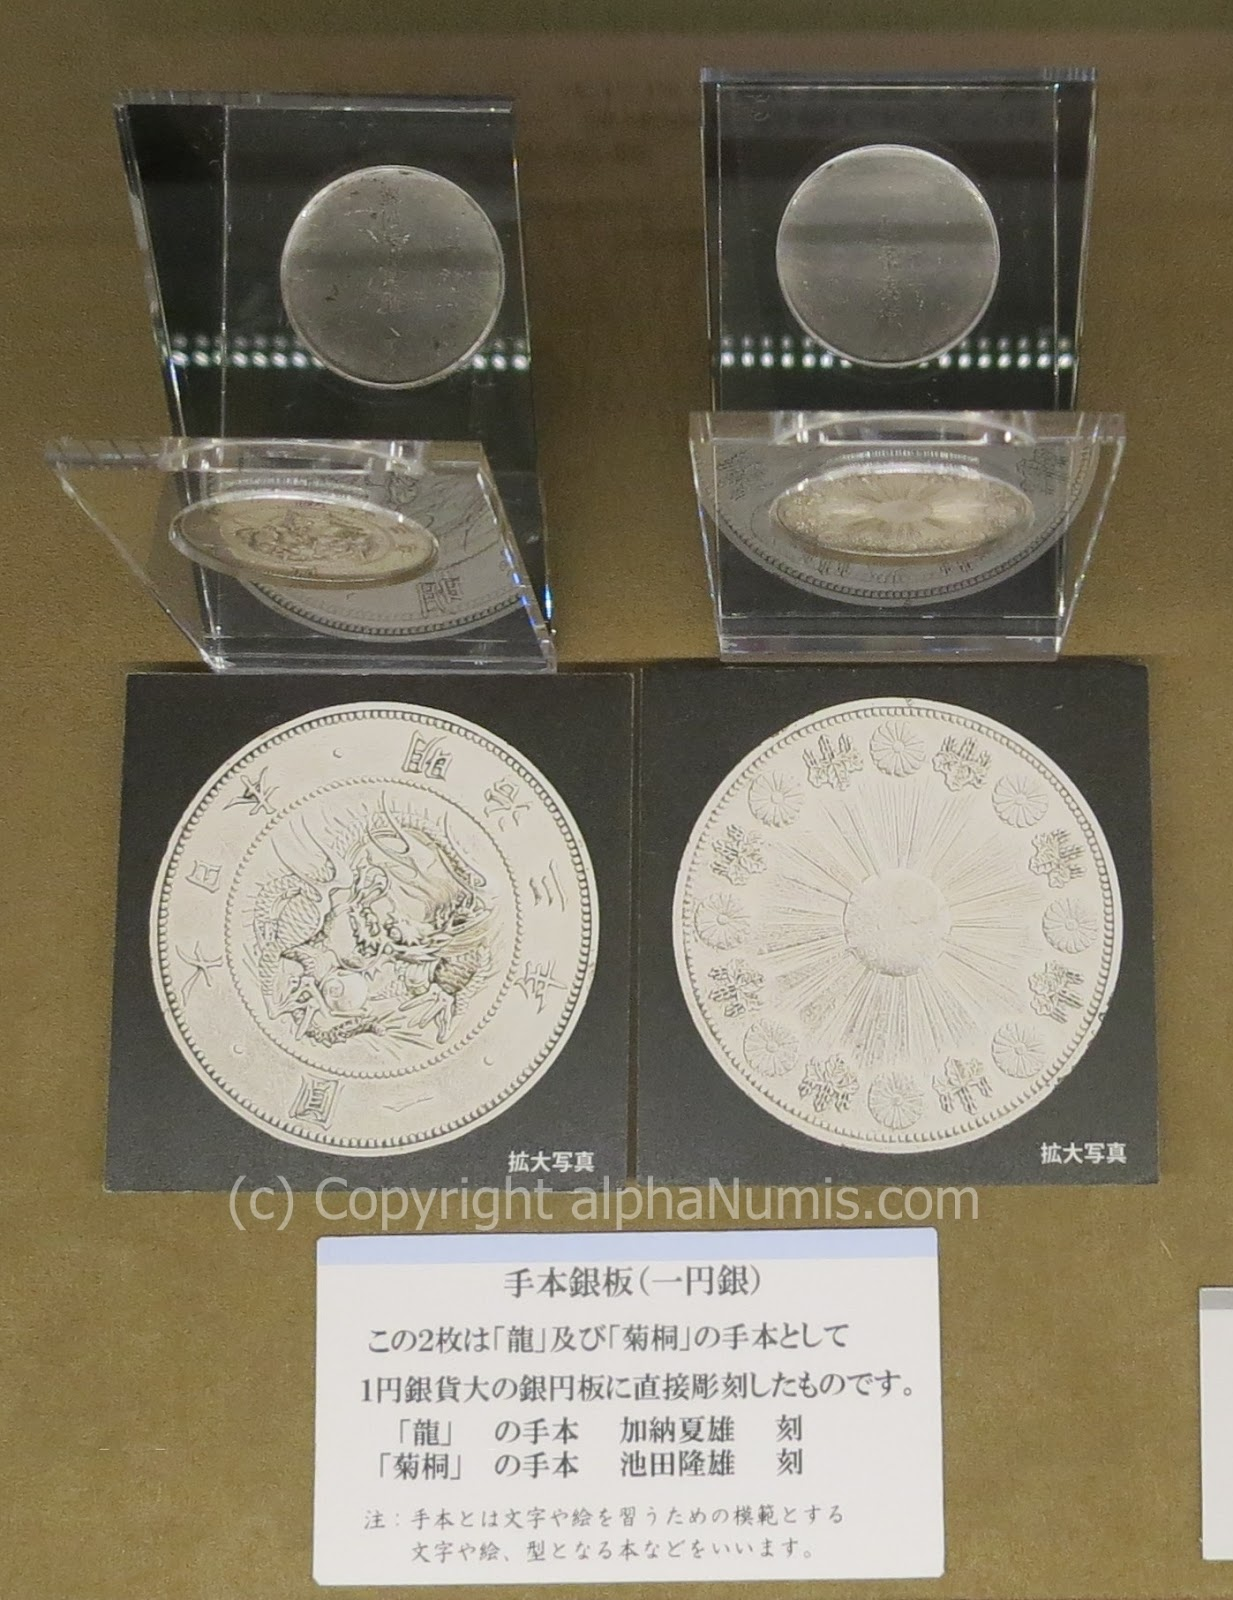 Numismatica :: Banknote & Coin Collecting: A Visit to the Japan Mint